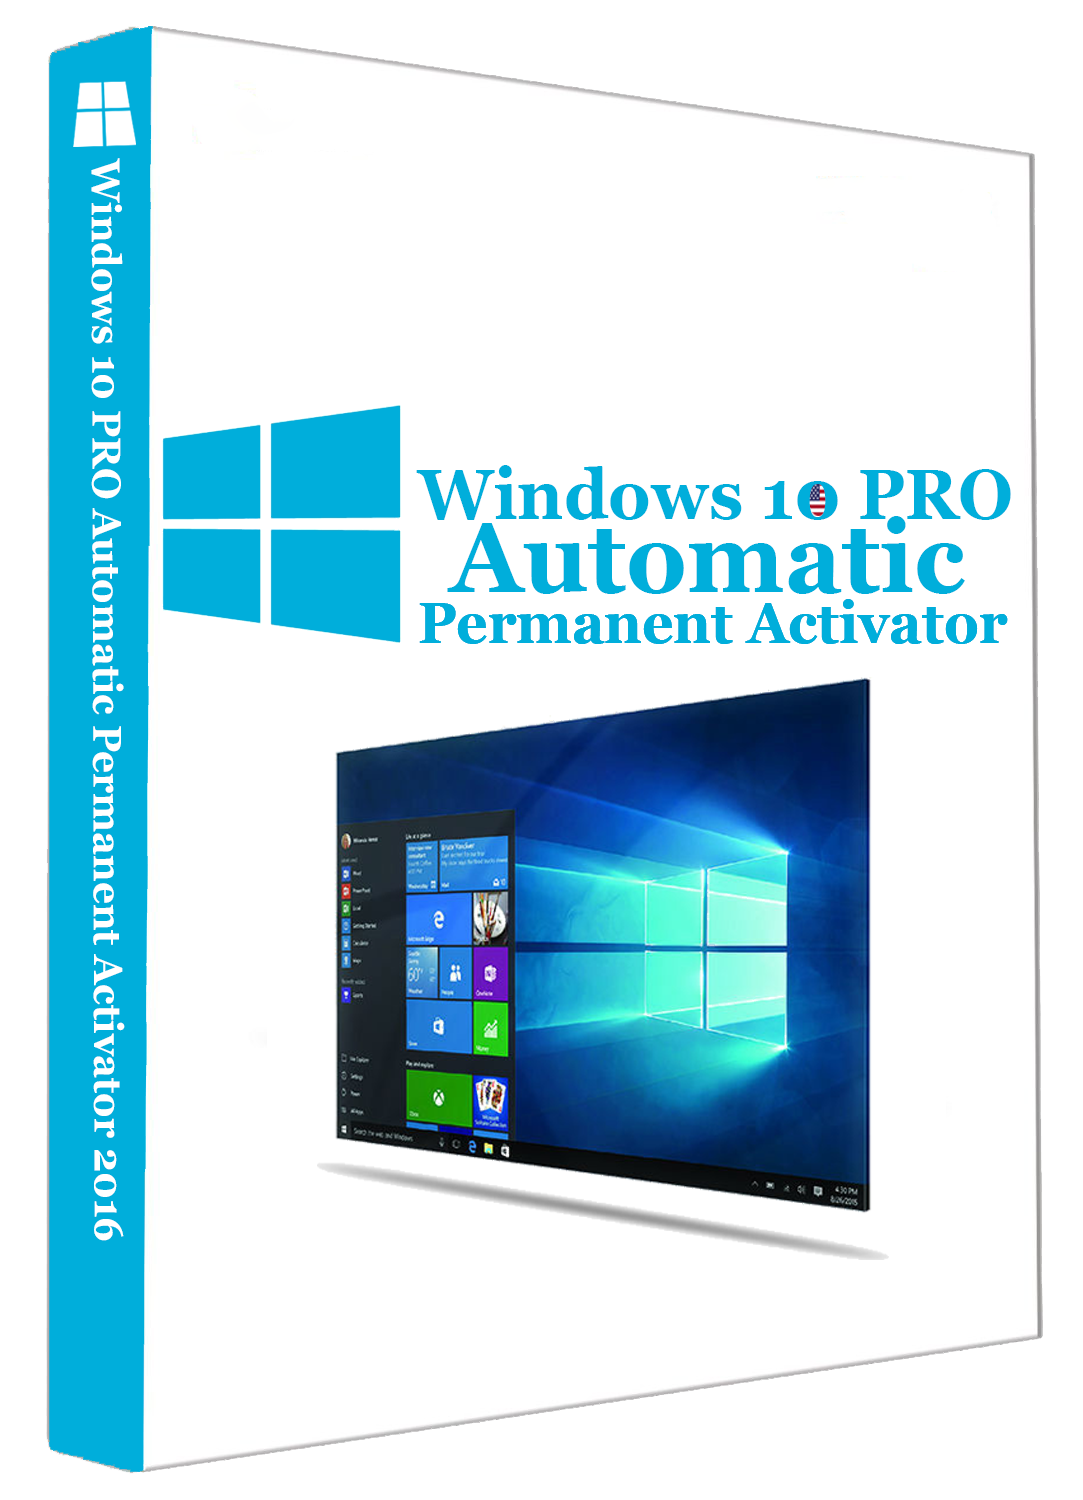 Windows 10 pro automatic permanent activator v1 0 for Window 10 pro